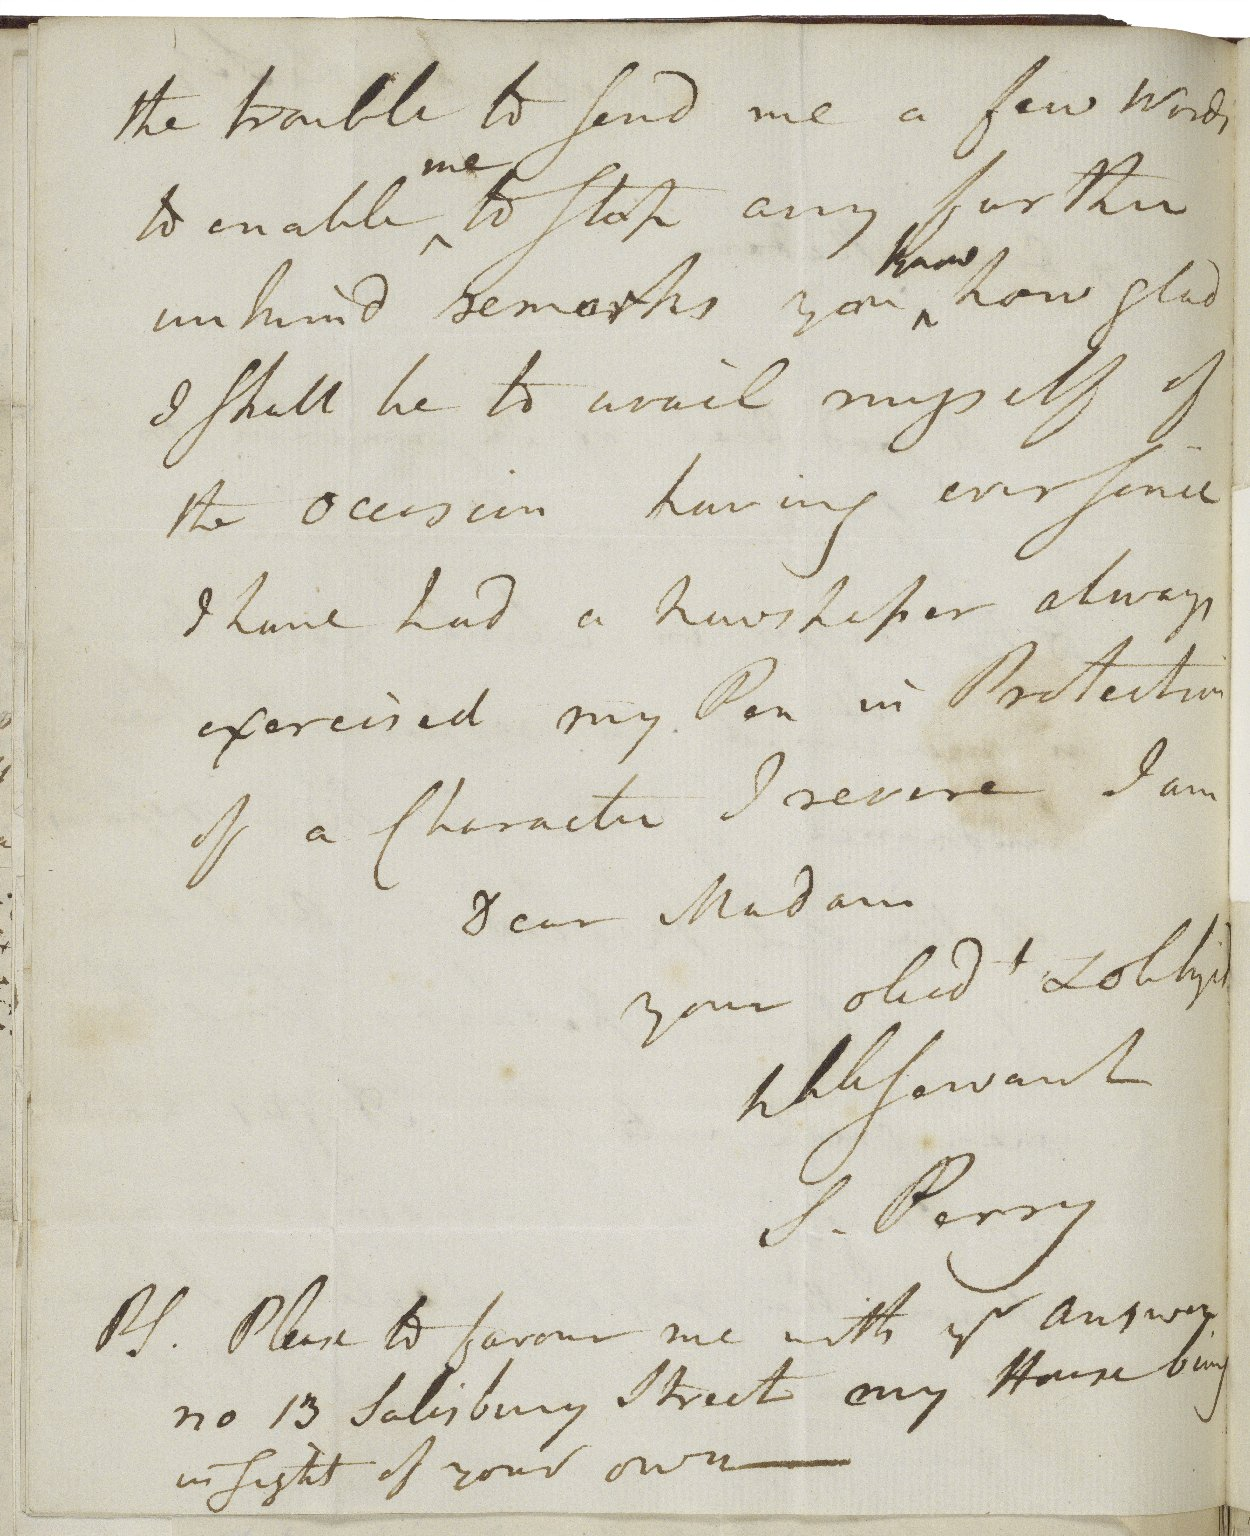 Autograph letter signed from S. (Sampson) Perry, No. 13, Salisbury St., to Mrs. Garrick [manuscript], [1791] September 14 Wednesday.